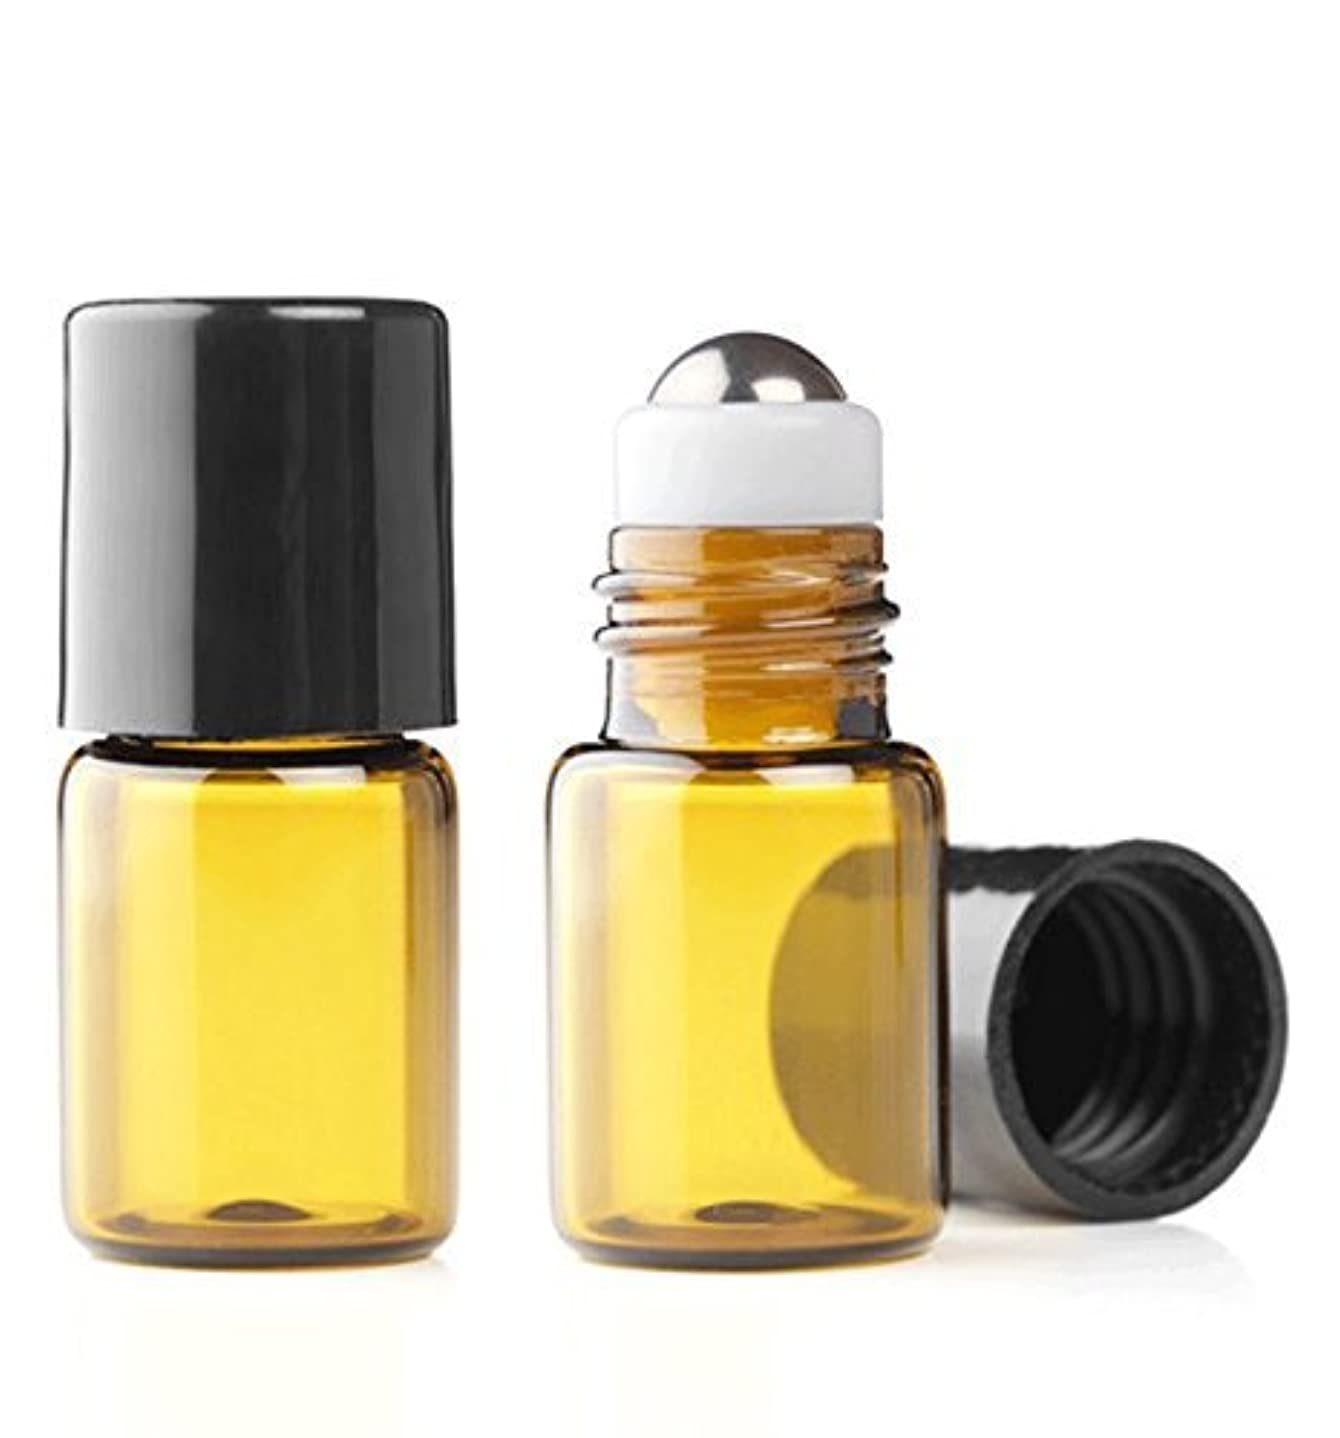 衝突コース着服スポンサーGrand Parfums Empty 2ml Amber Glass Micro Mini Rollon Dram Glass Bottles with Metal Roller Balls - Refillable...